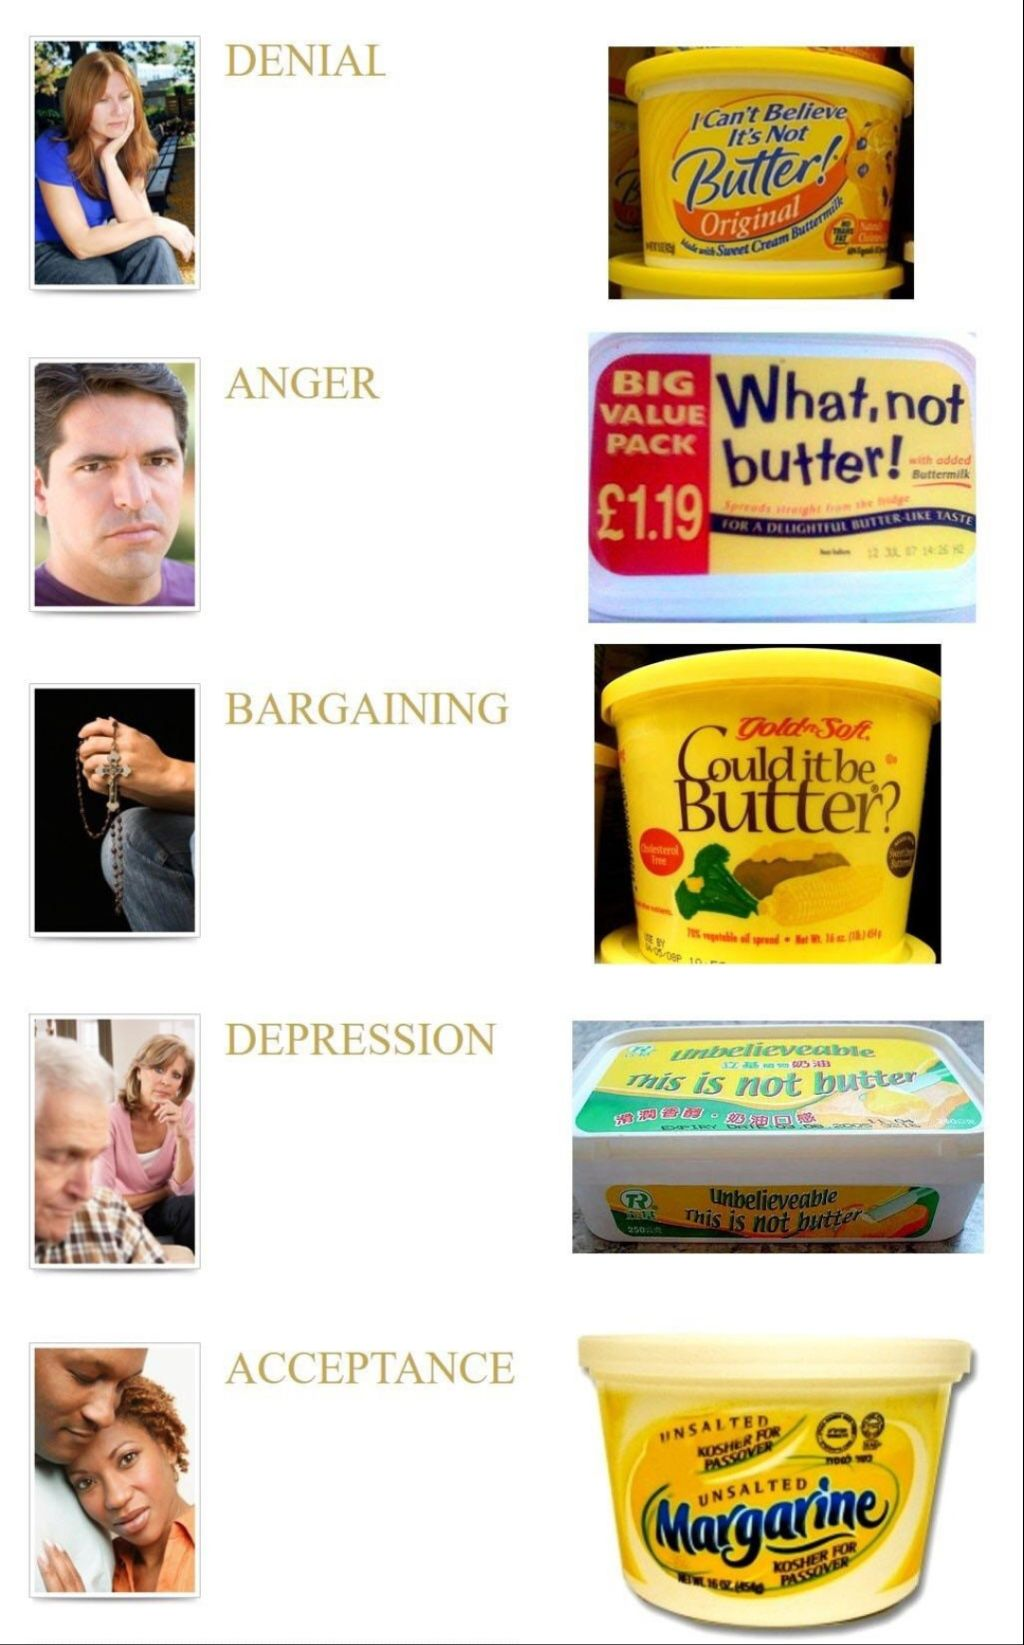 The stages of acceptance